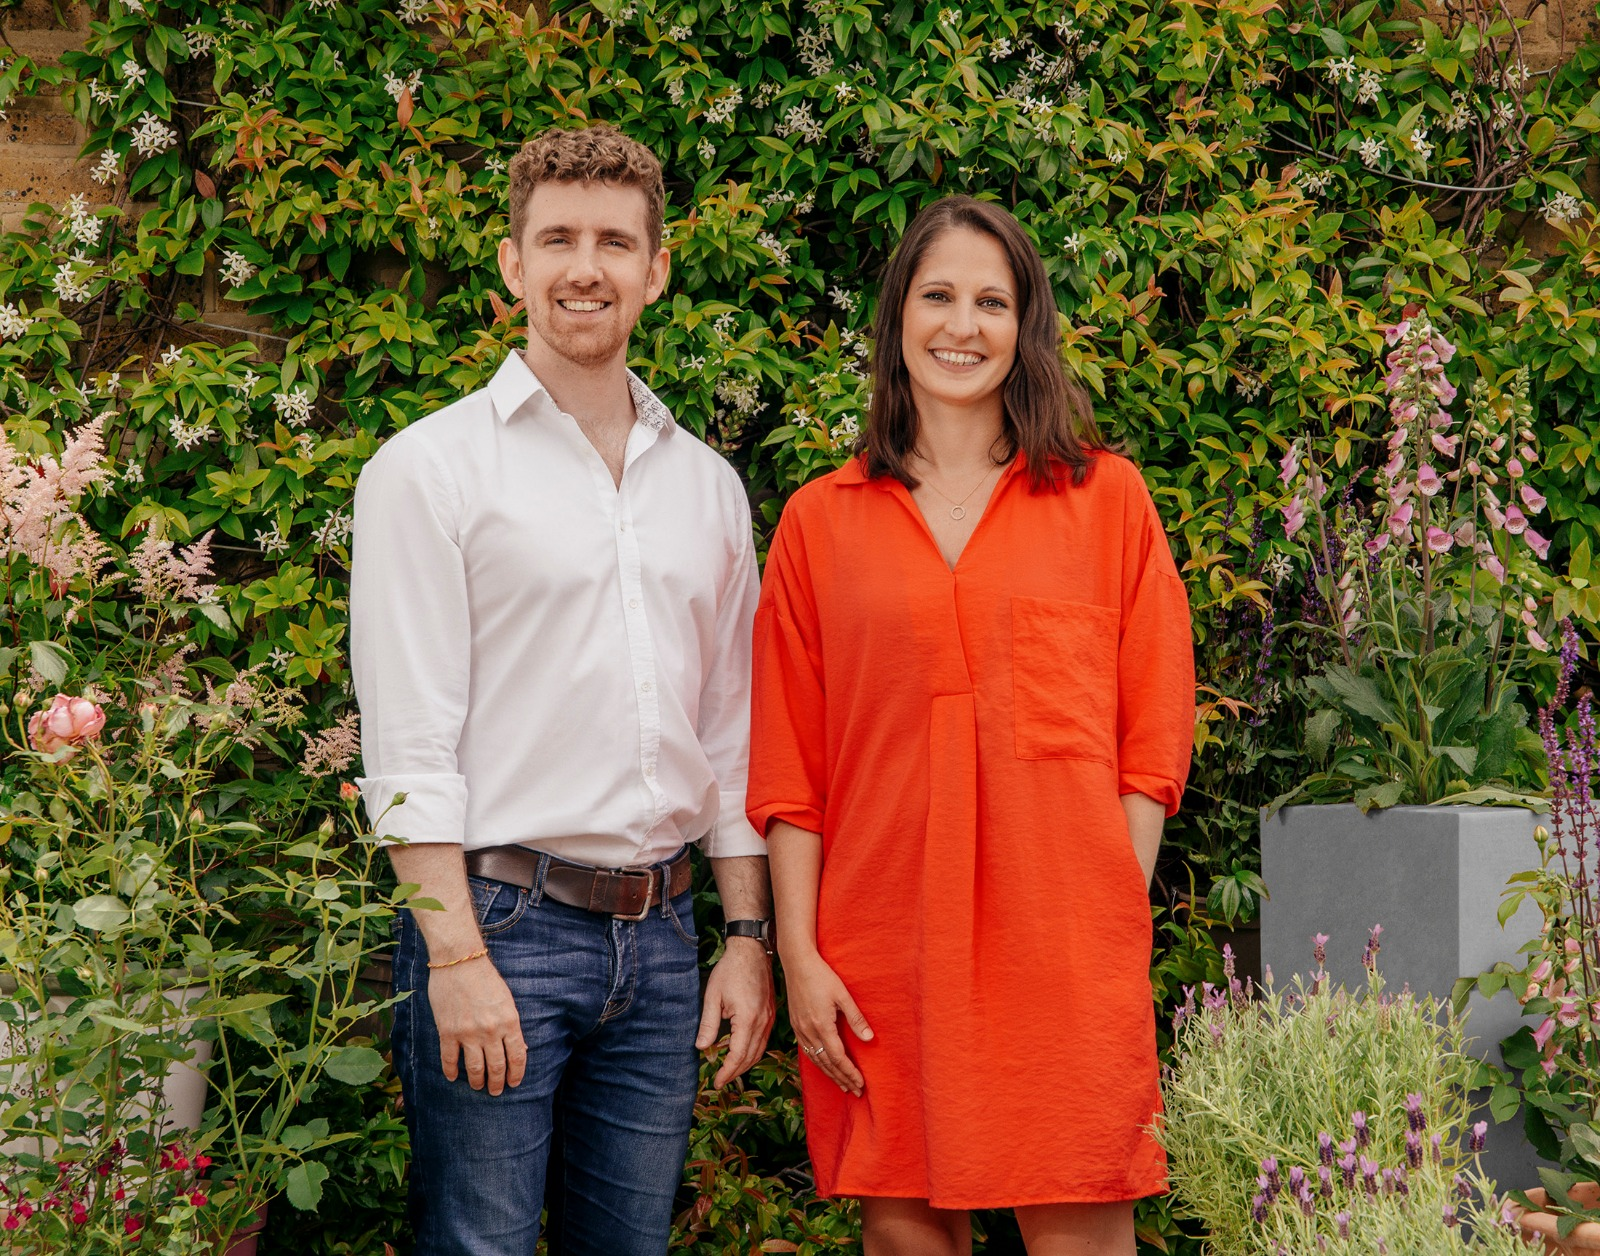 FORMER FARFETCH TEAM LAUNCHES SPROUTL, THE DESTINATION FOR NEW GENERATION OF GARDENERS, AND RAISES $9M LED BY INDEX VENTURES